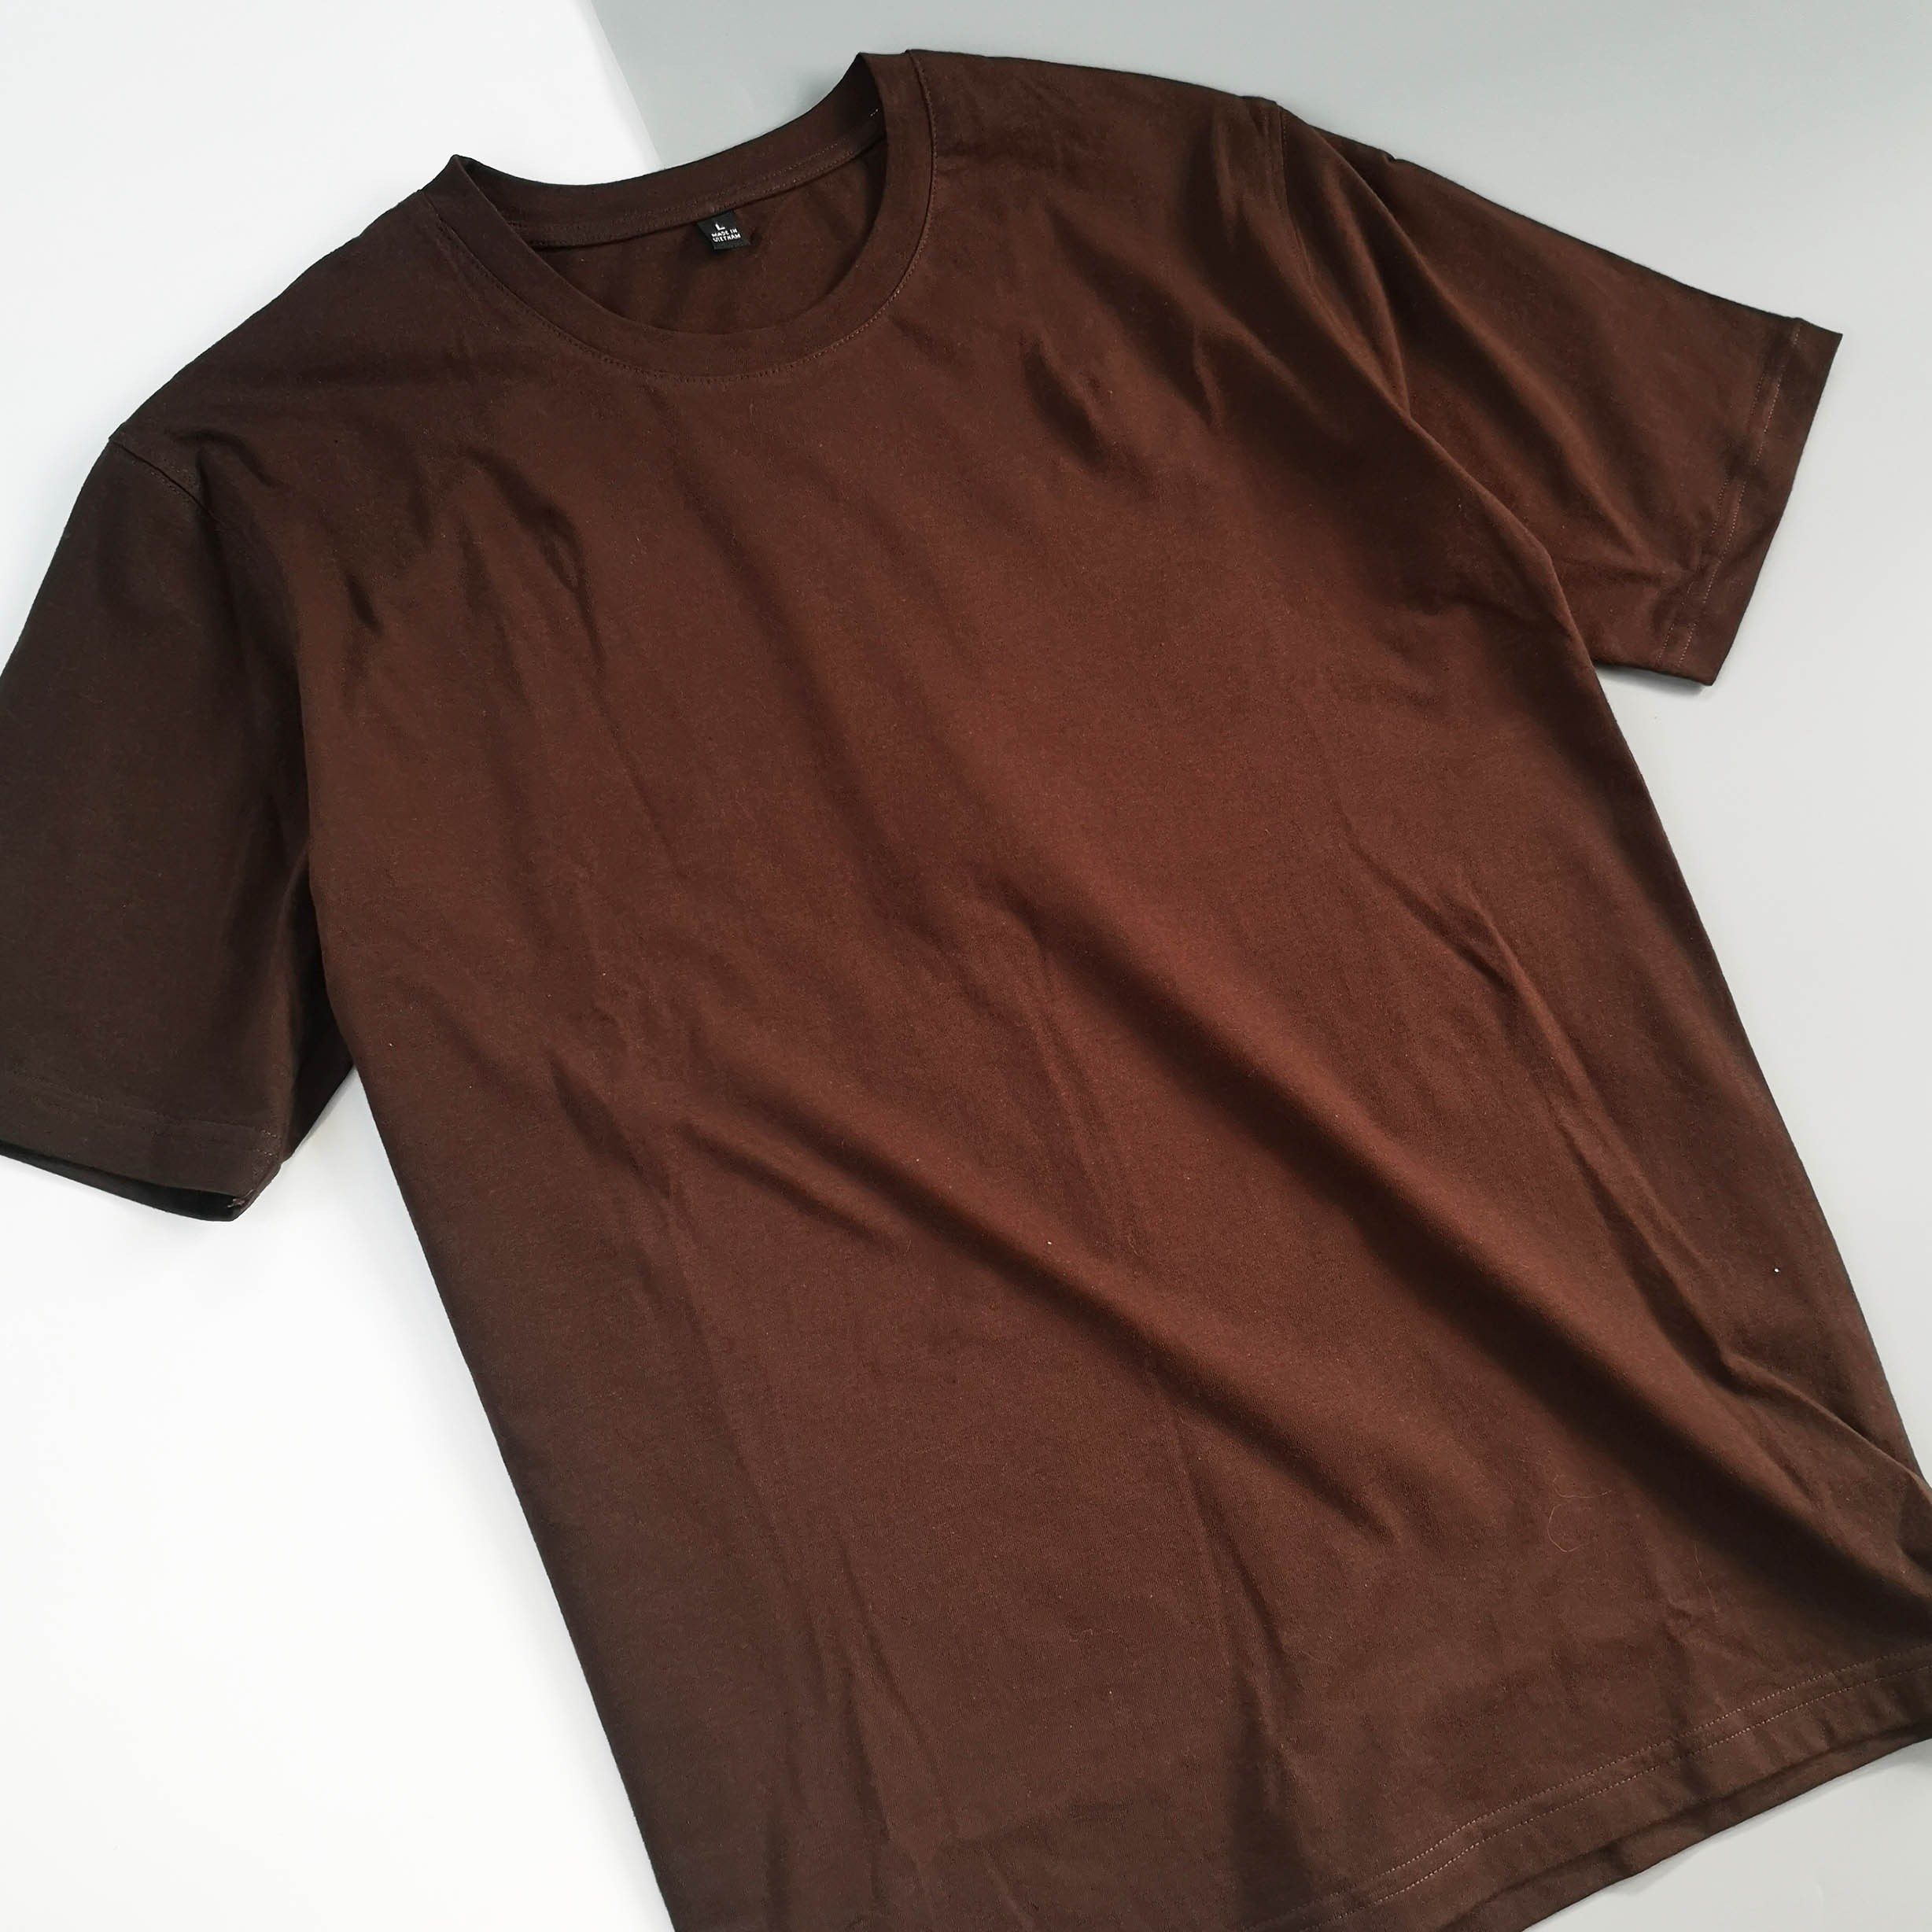 Áo thun unisex cotton 100% in hình Pet lover, it was not me - Silly Pilot pug (chocolate color)